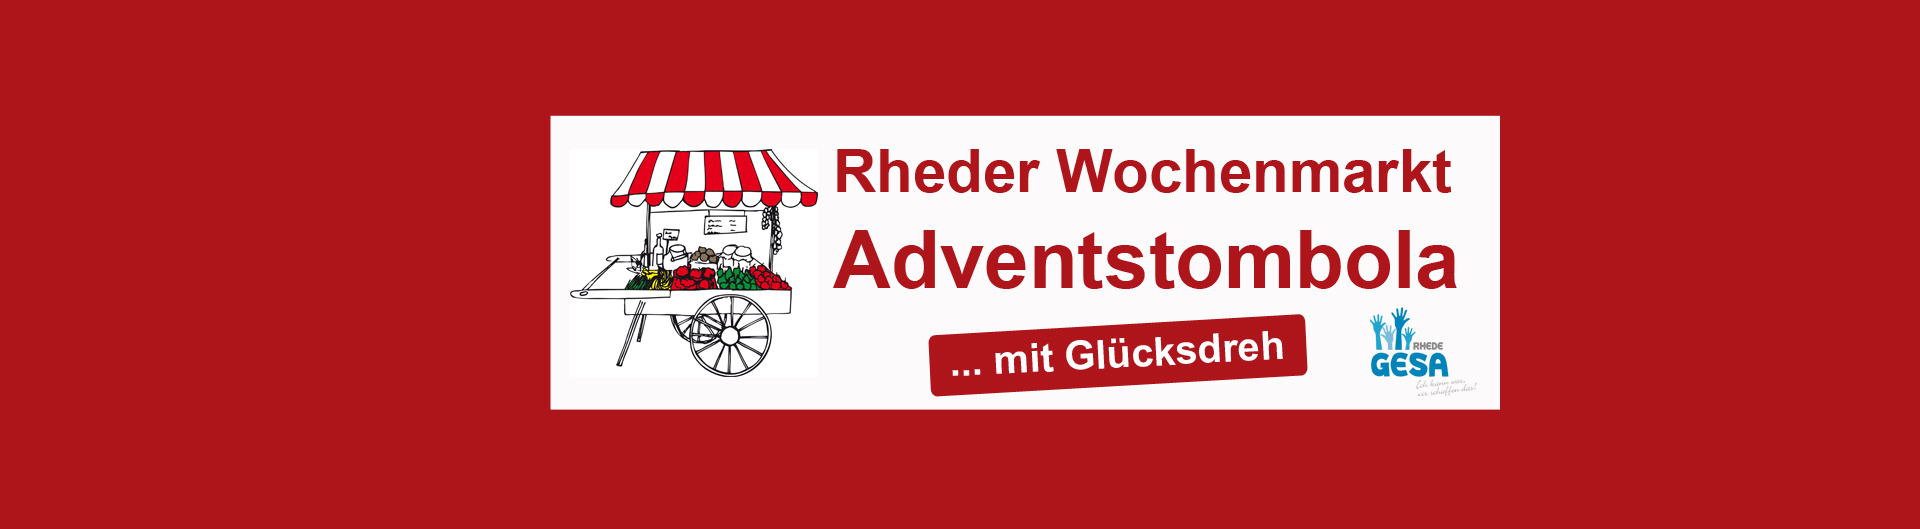 Adventstombola Wochenmarkt